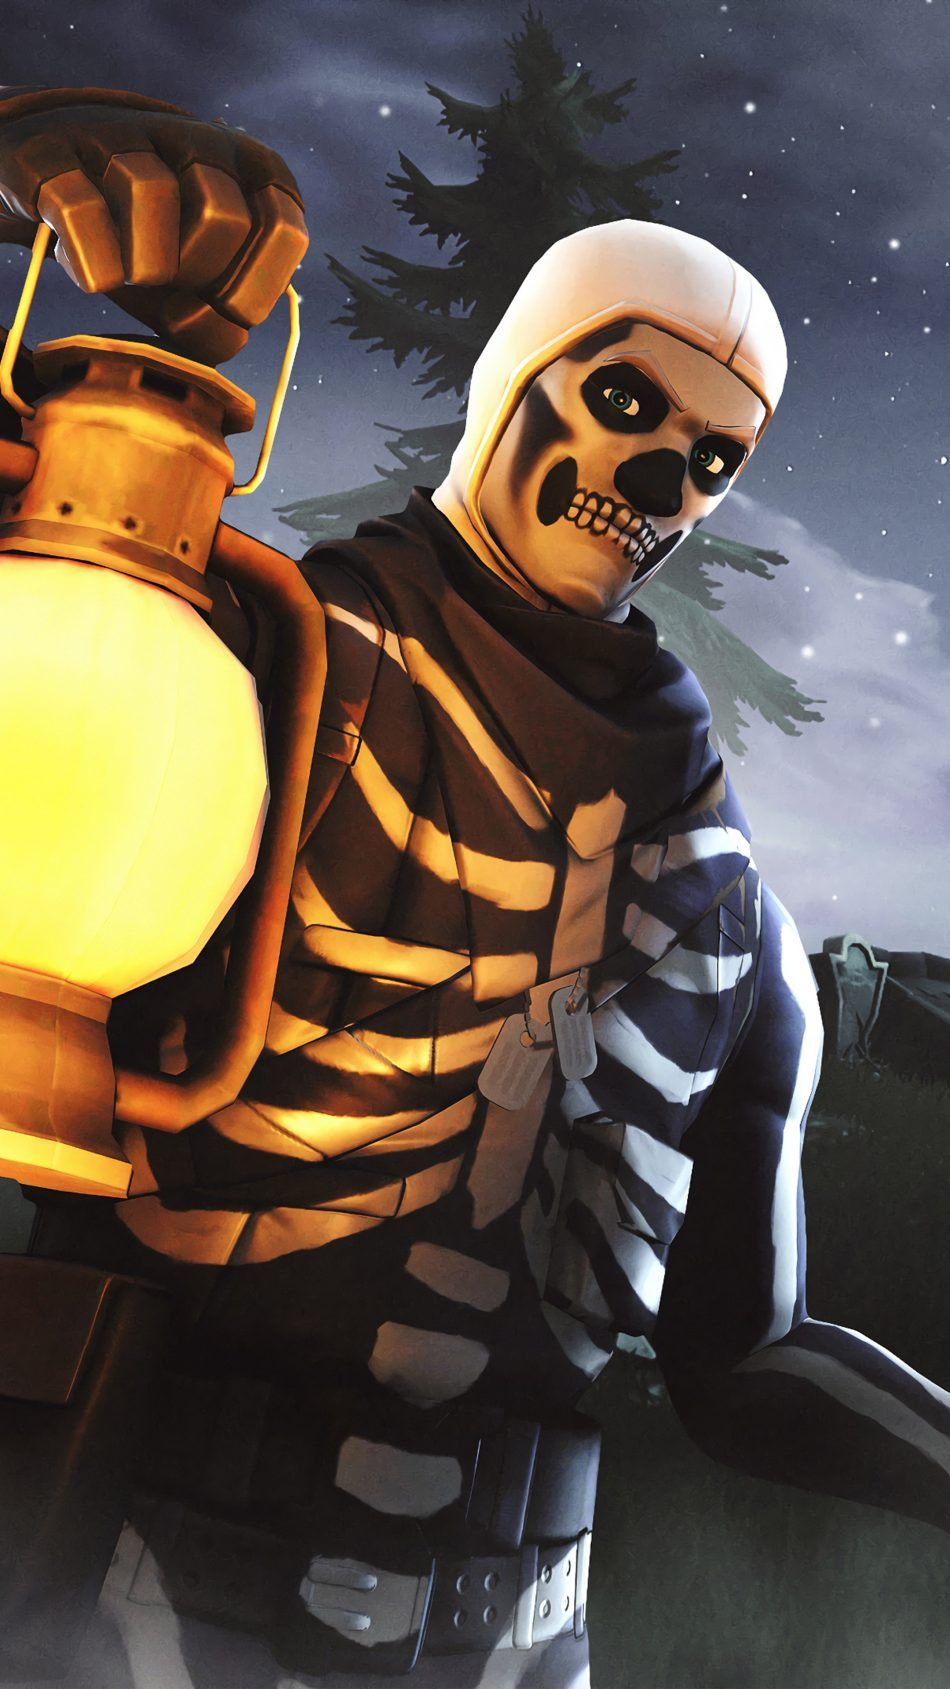 Skull Trooper Fortnite Season 6 Fortnite Wallpapers Pinterest